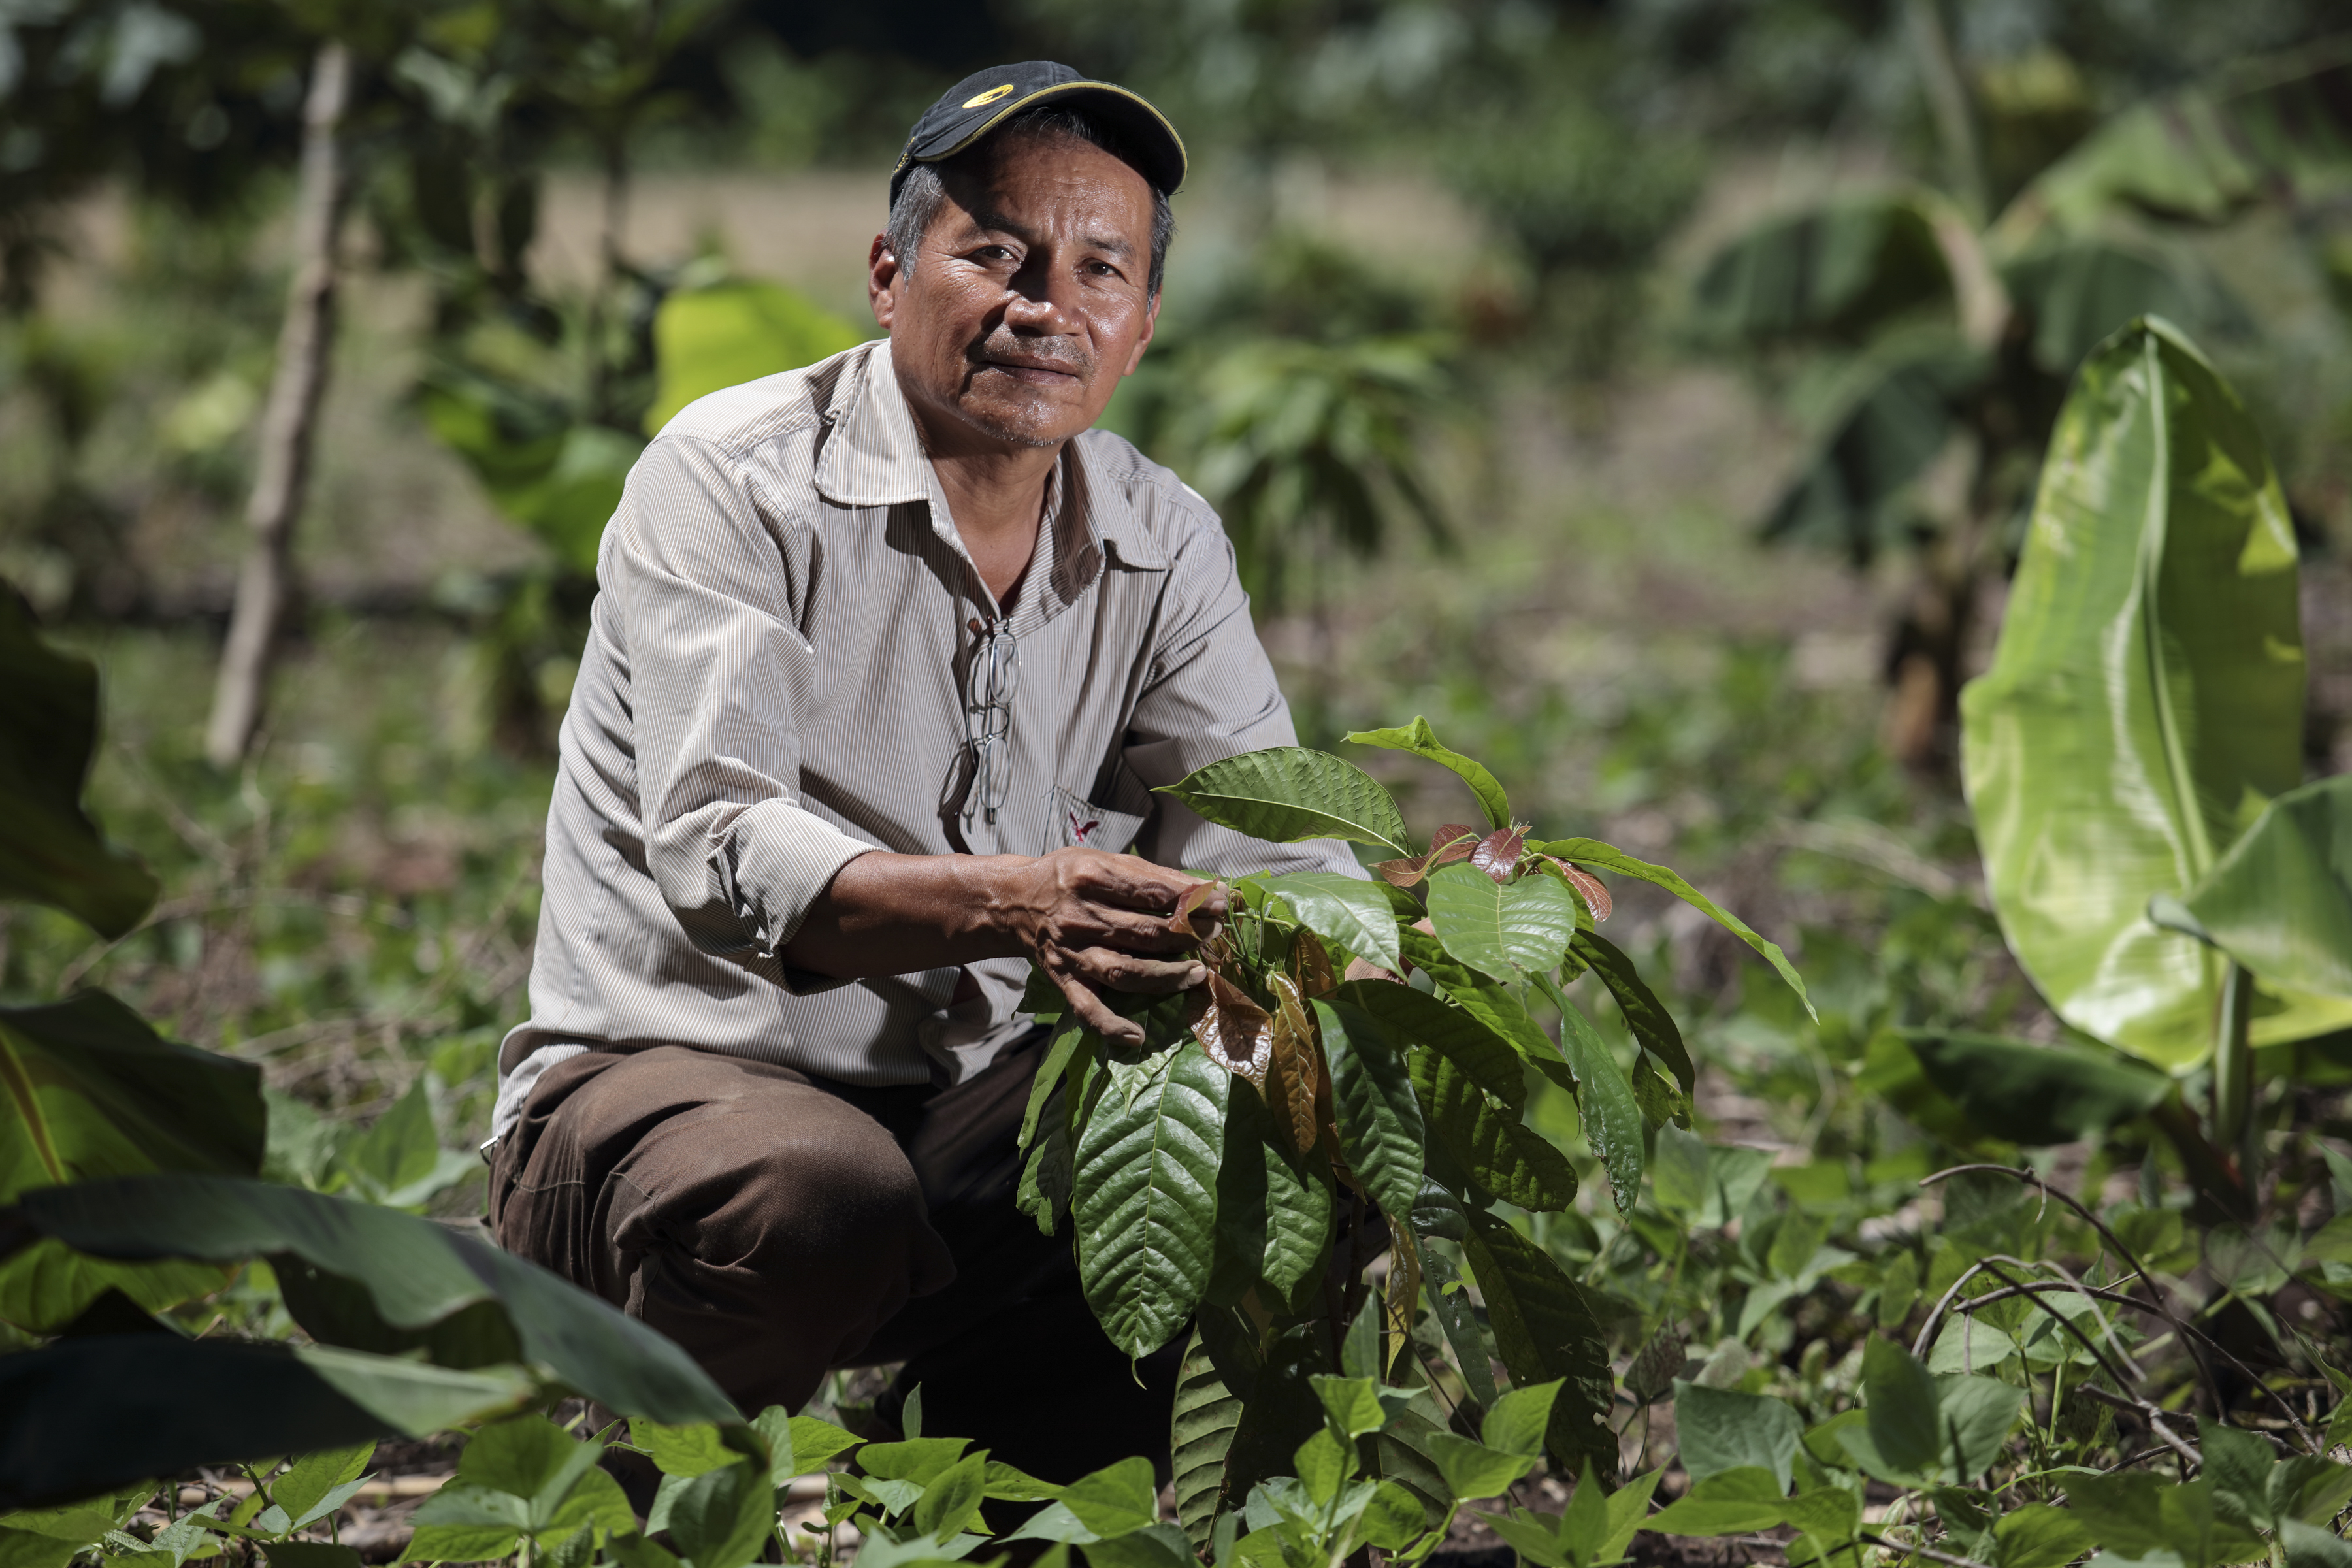 Simon Perez shows off his newly planted cacao trees. Photo by Oscar Leiva/Silverlight for CRS